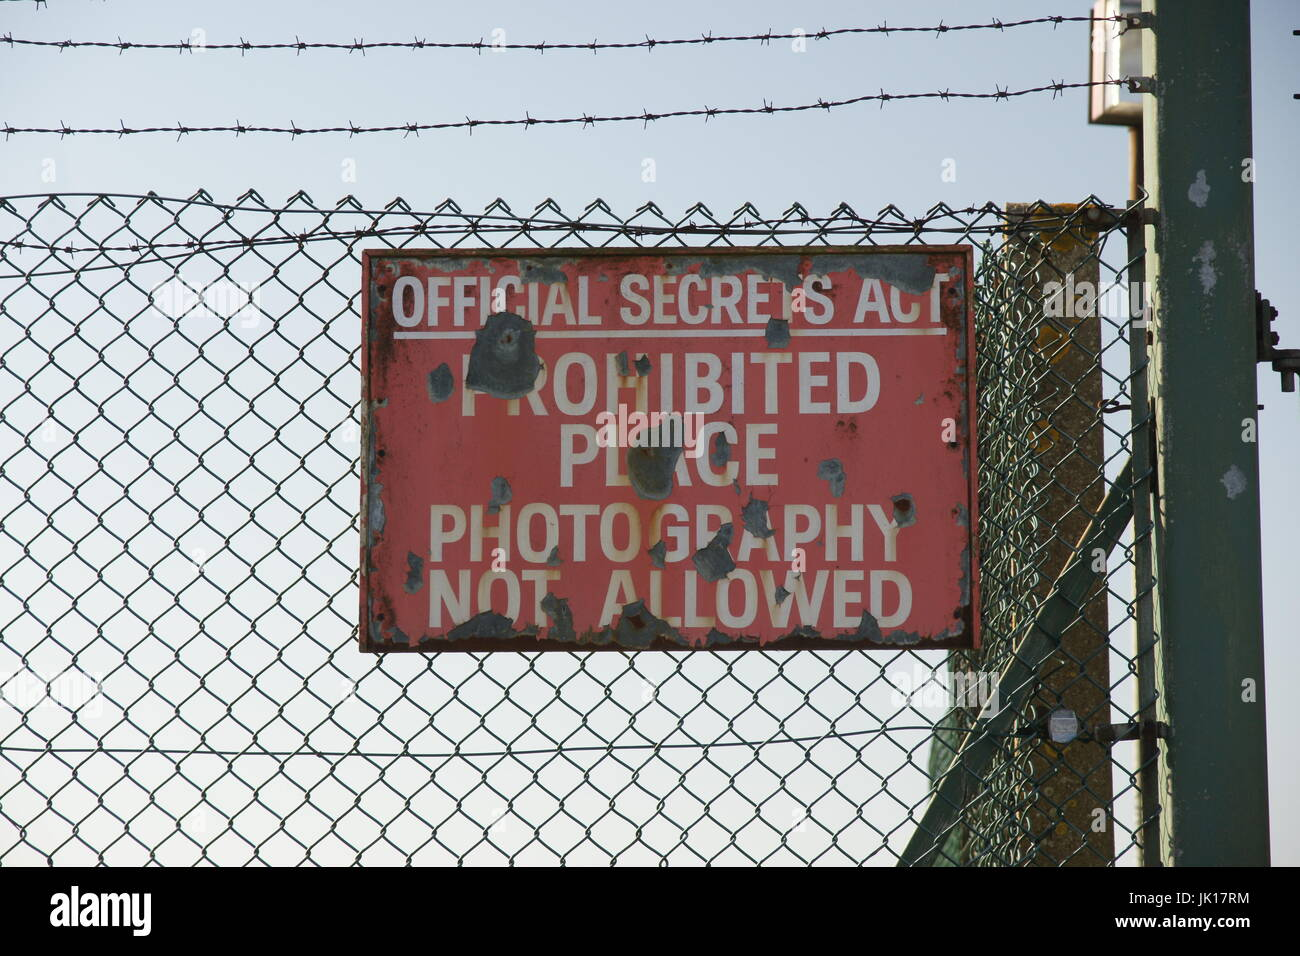 cold war airfield, v-bomber base, RAF Scampton - Stock Image